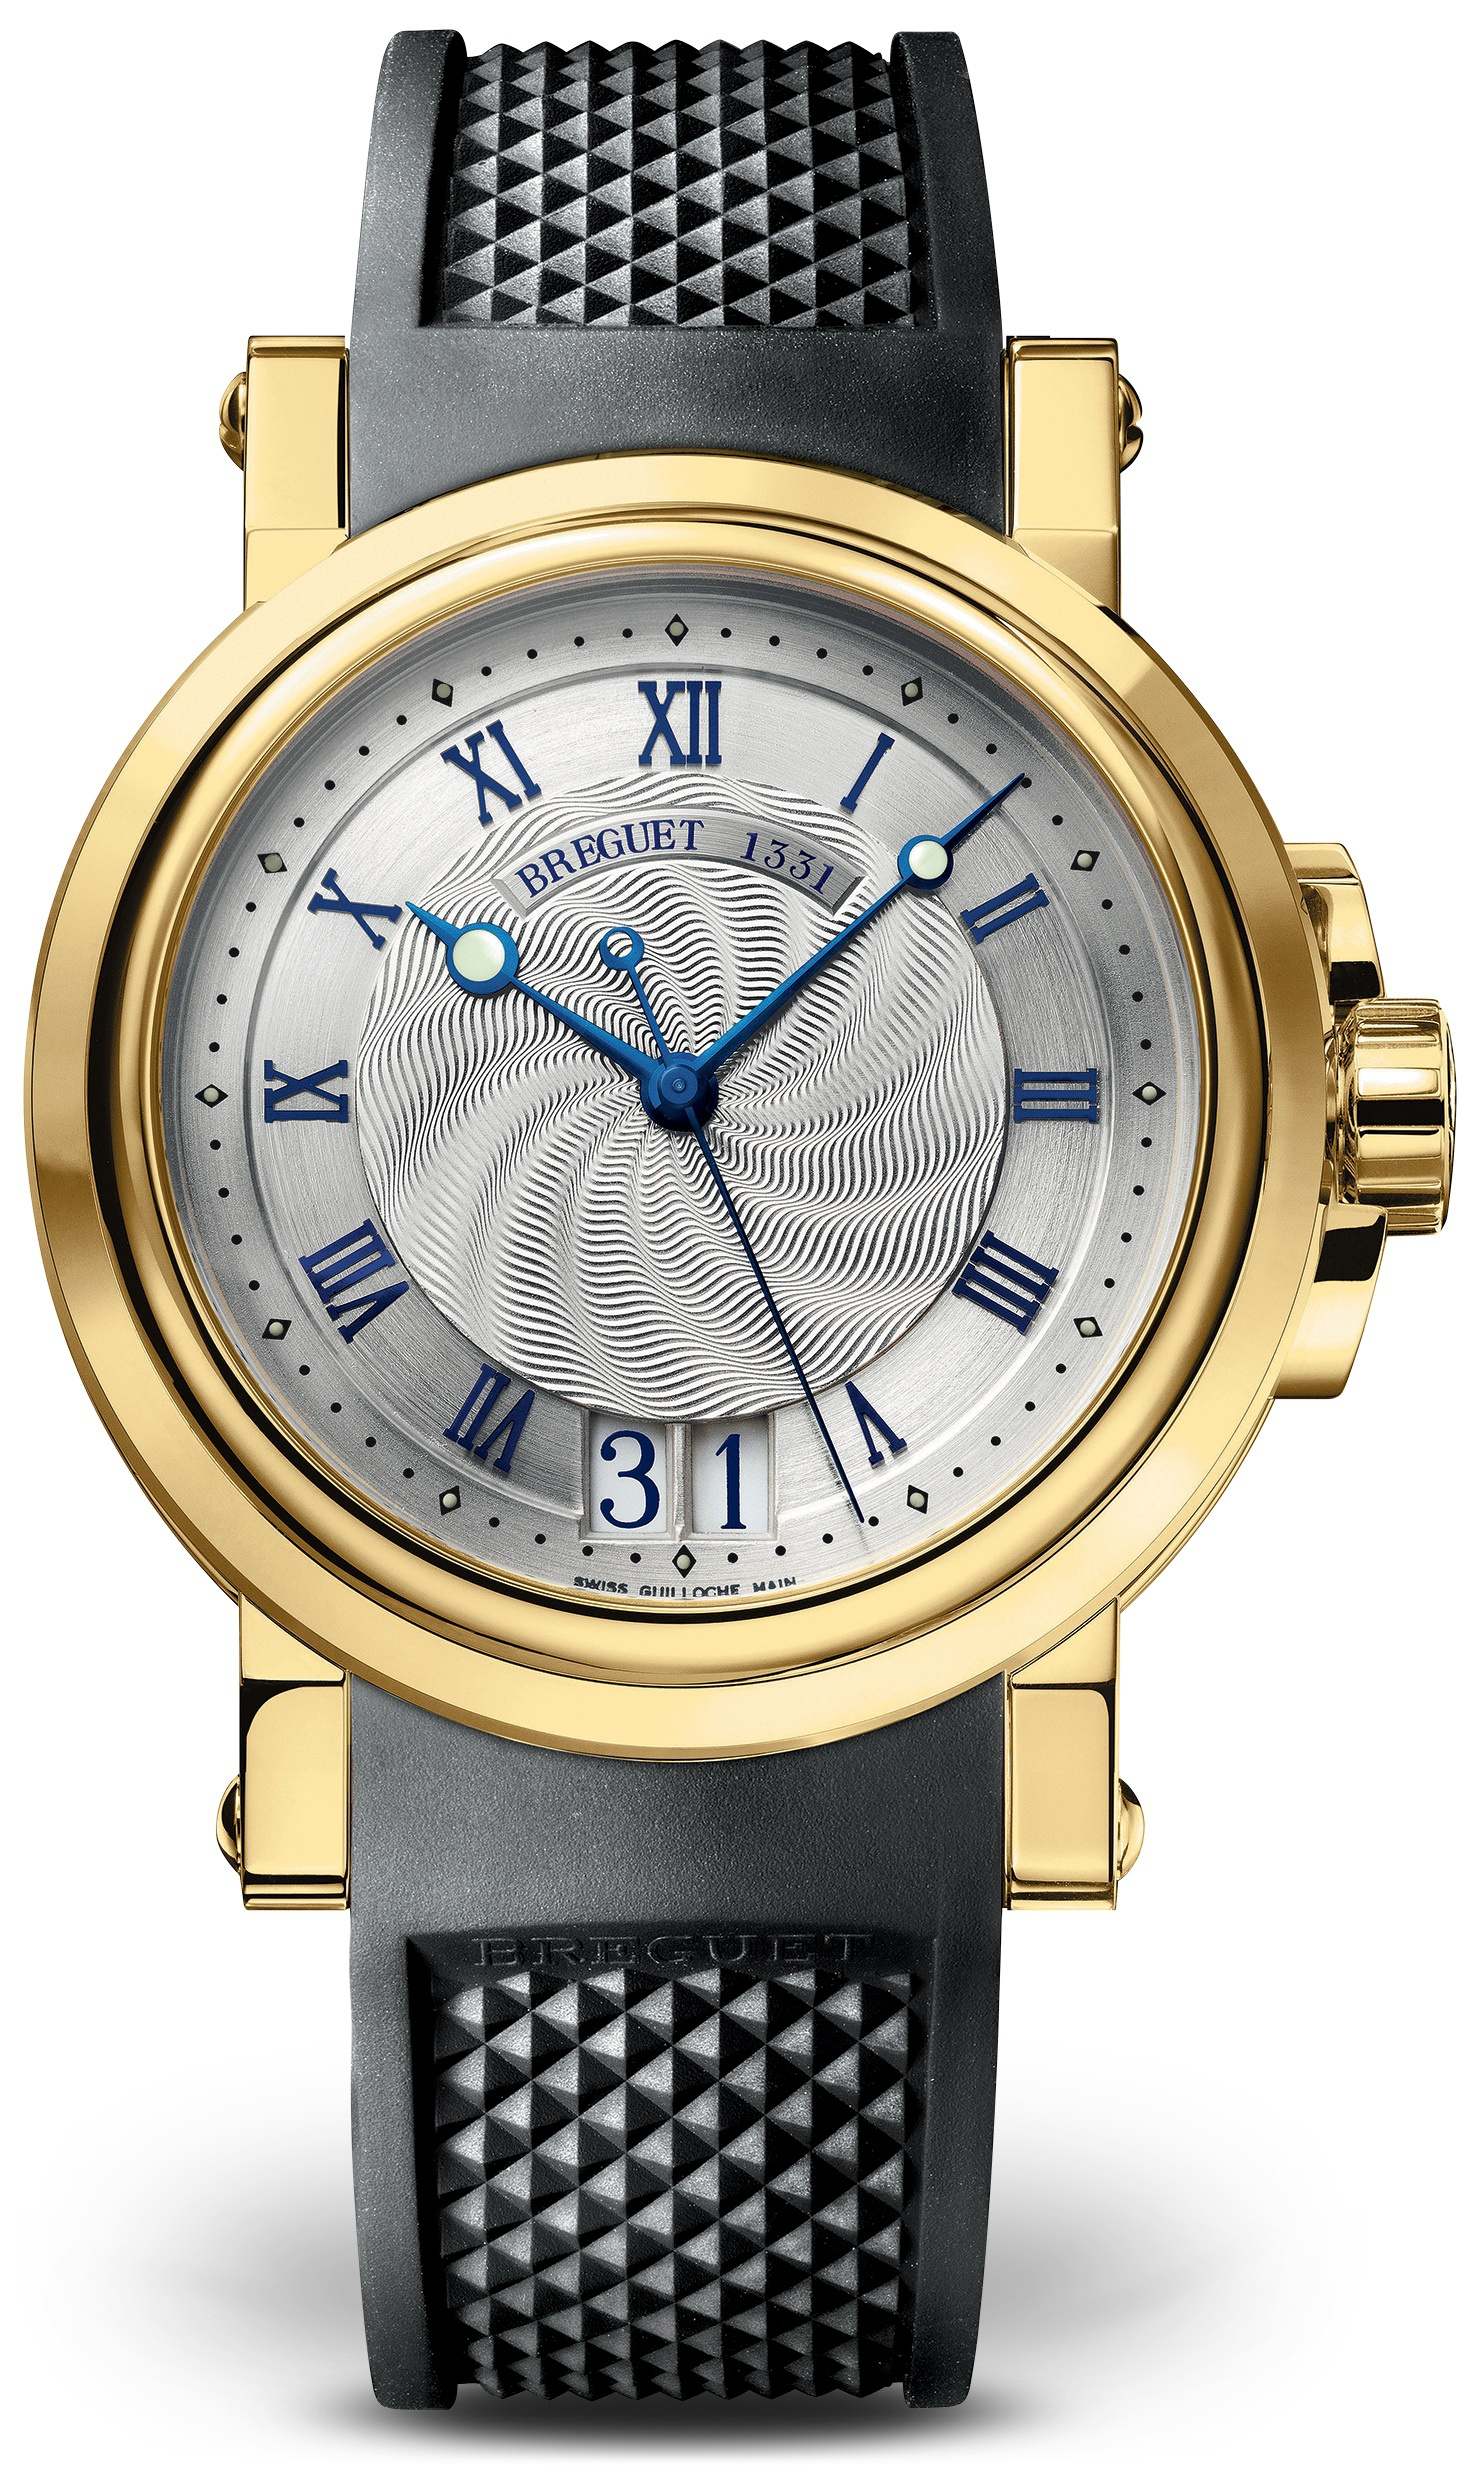 Breguet 5817 Automatic Big Date